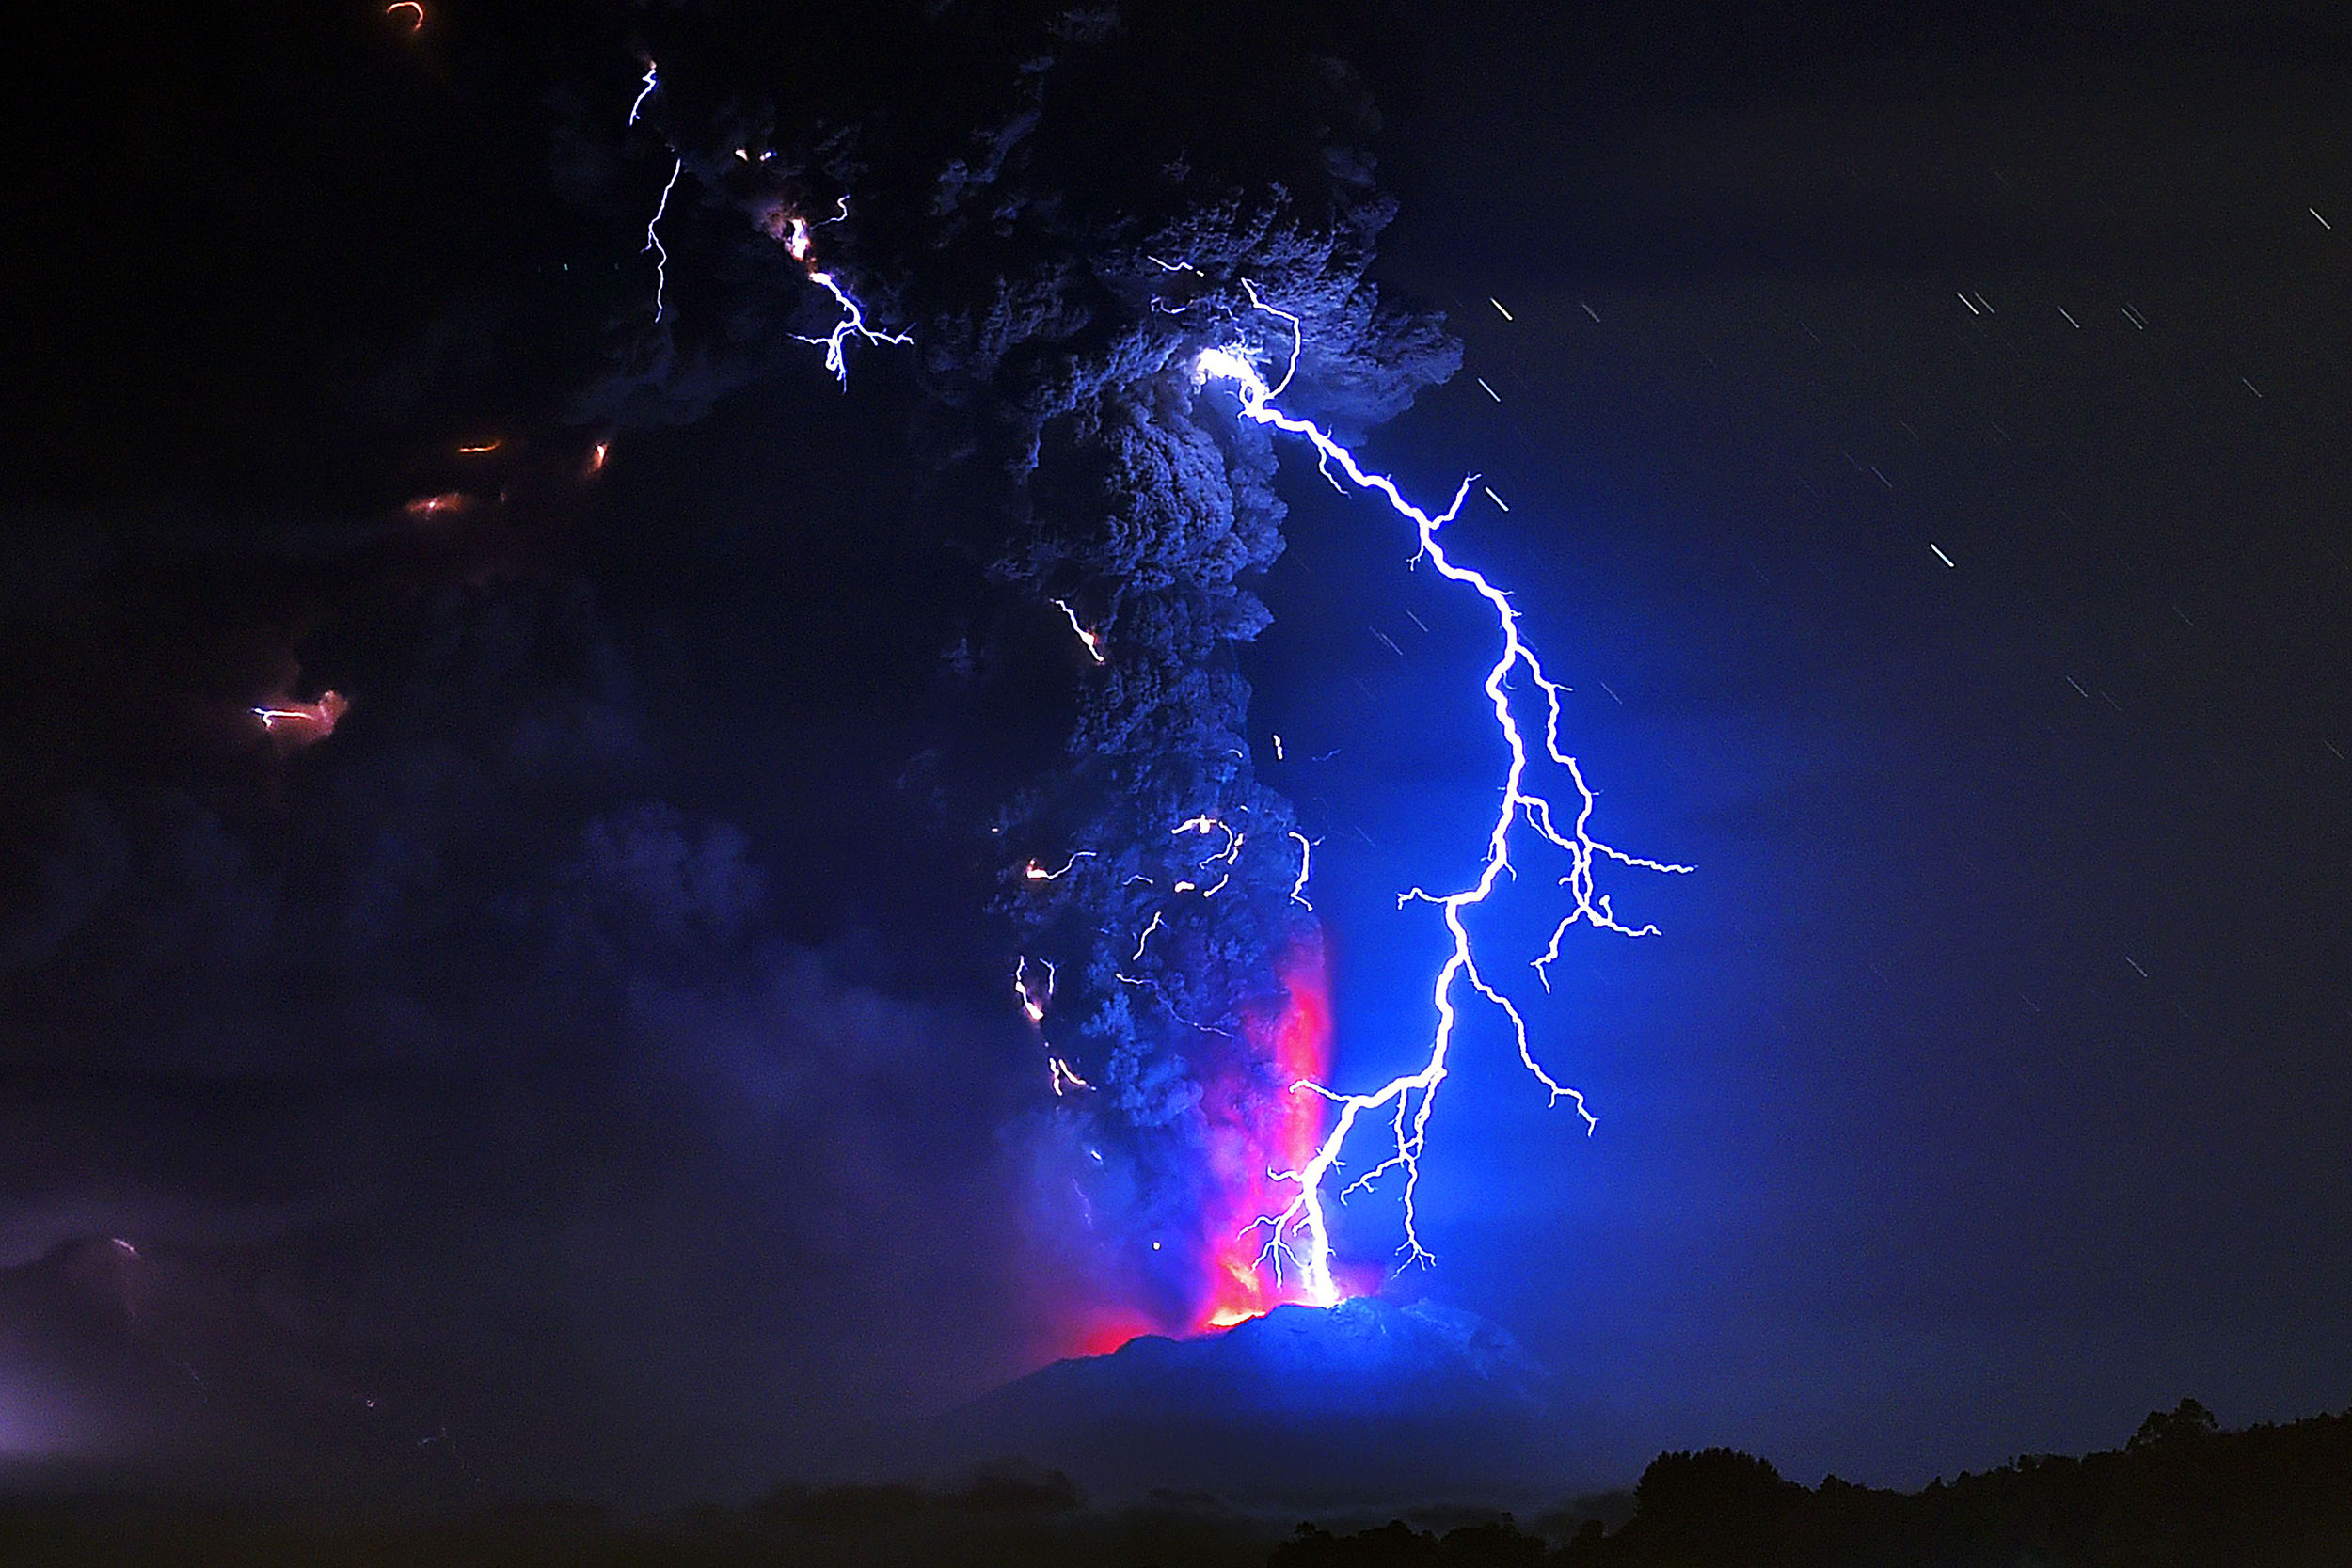 Volcanic lightning and lava spews from the Calbuco volcano in Frutillar, southern Chile on April 23, 2015.